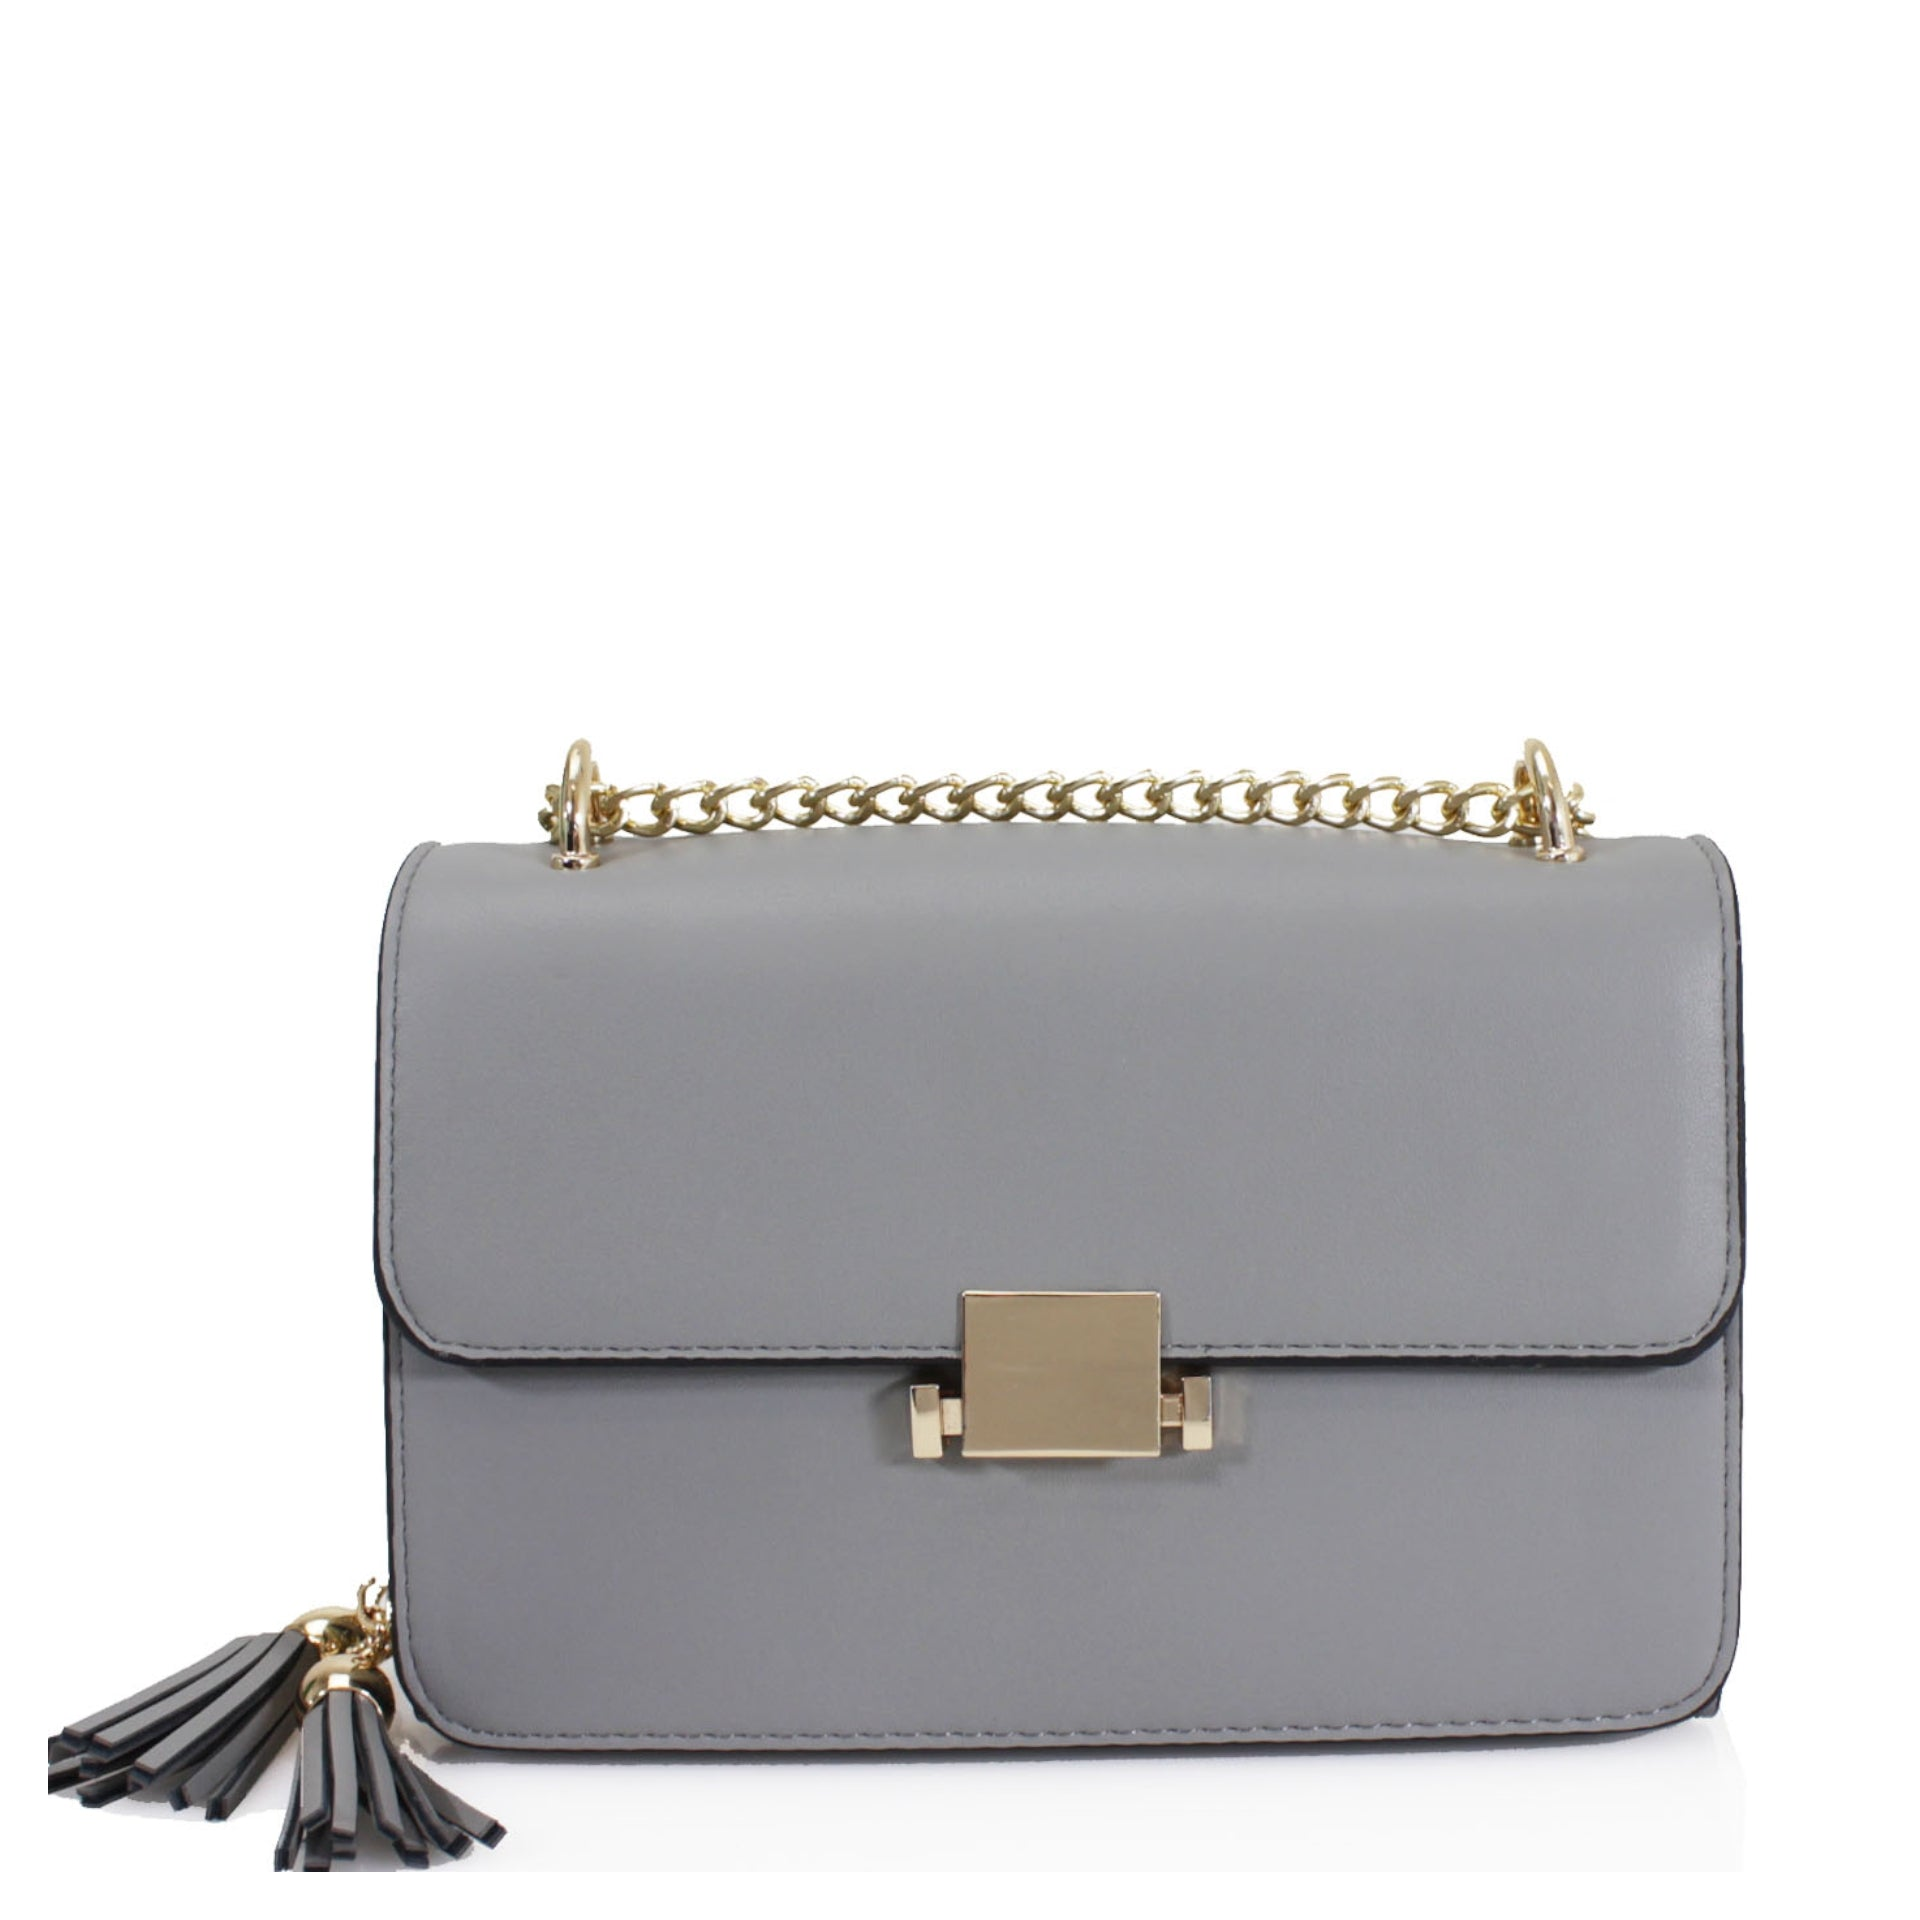 Grey Gold Chain Shoulder Bag - Phoenix